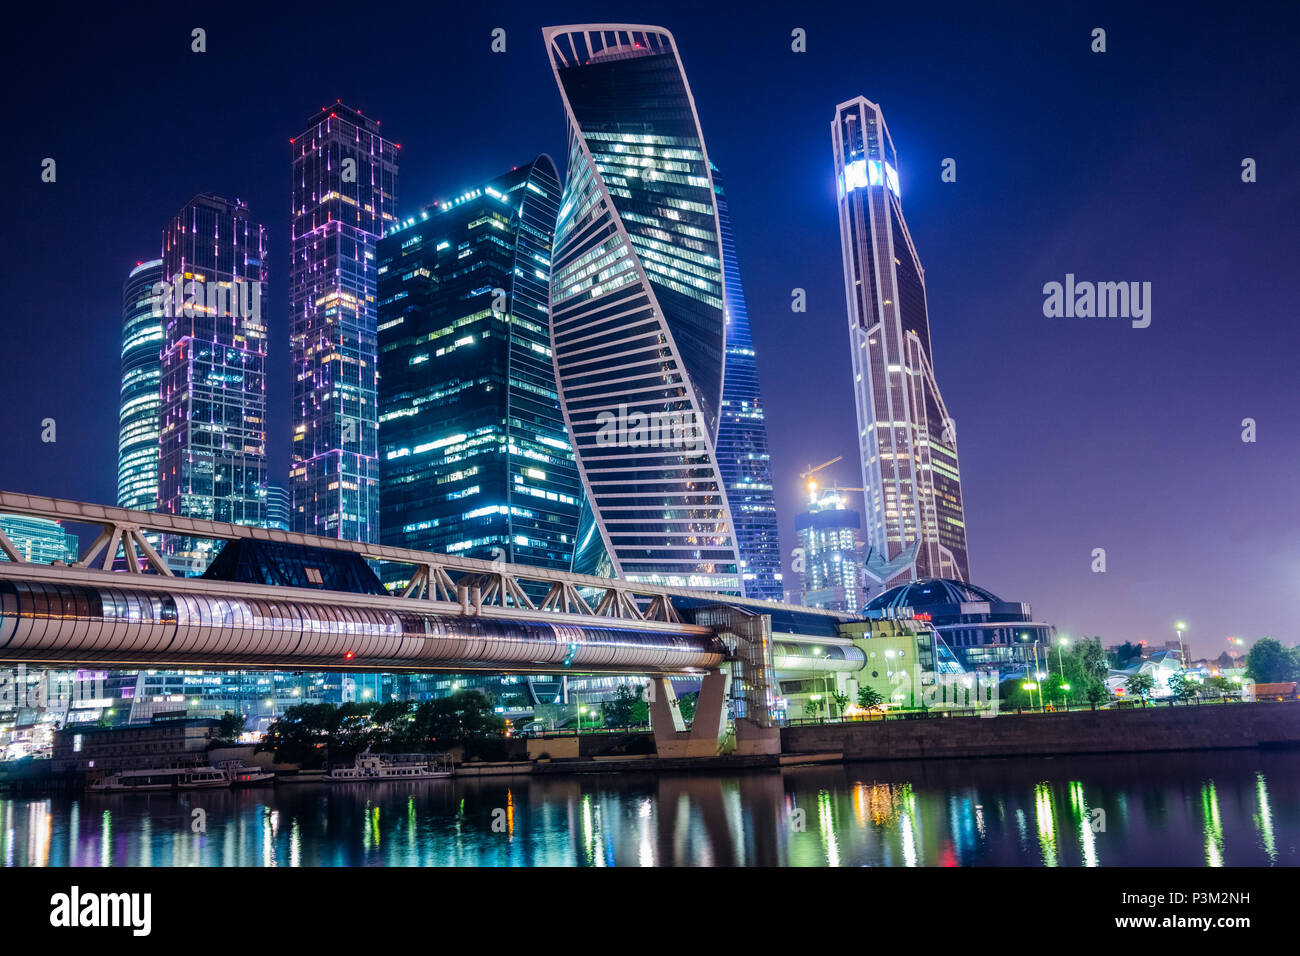 Modern skyscrapers of Moscow at night with a bridge across the river with illumination - Stock Image